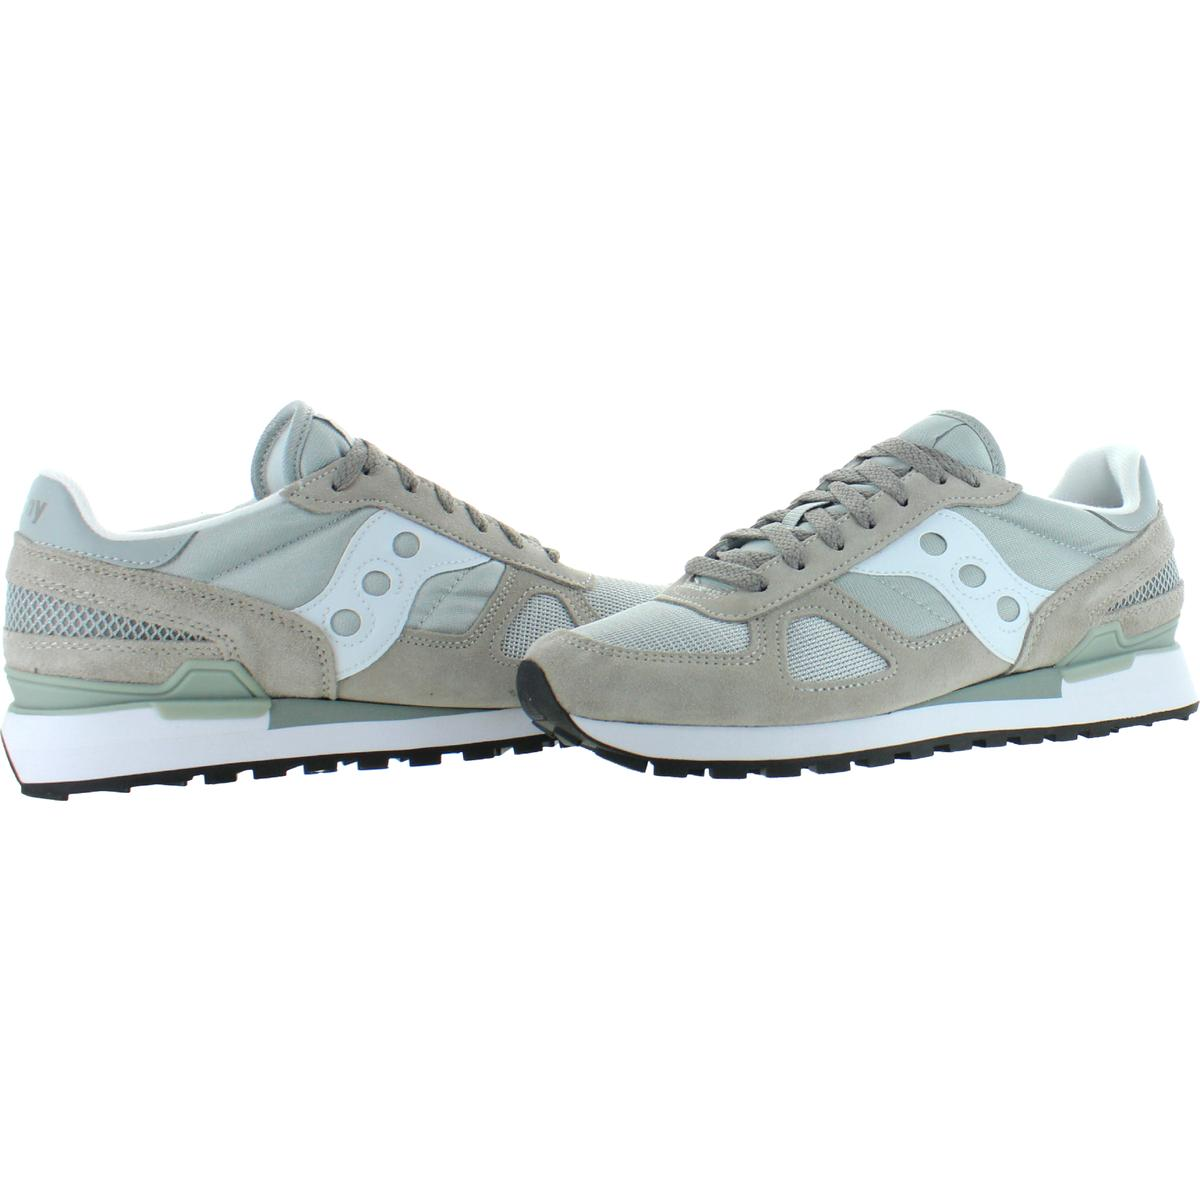 Saucony-Mens-Shadow-Original-Trainers-Suede-Comfort-Sneakers-Shoes-BHFO-0431 miniatuur 22